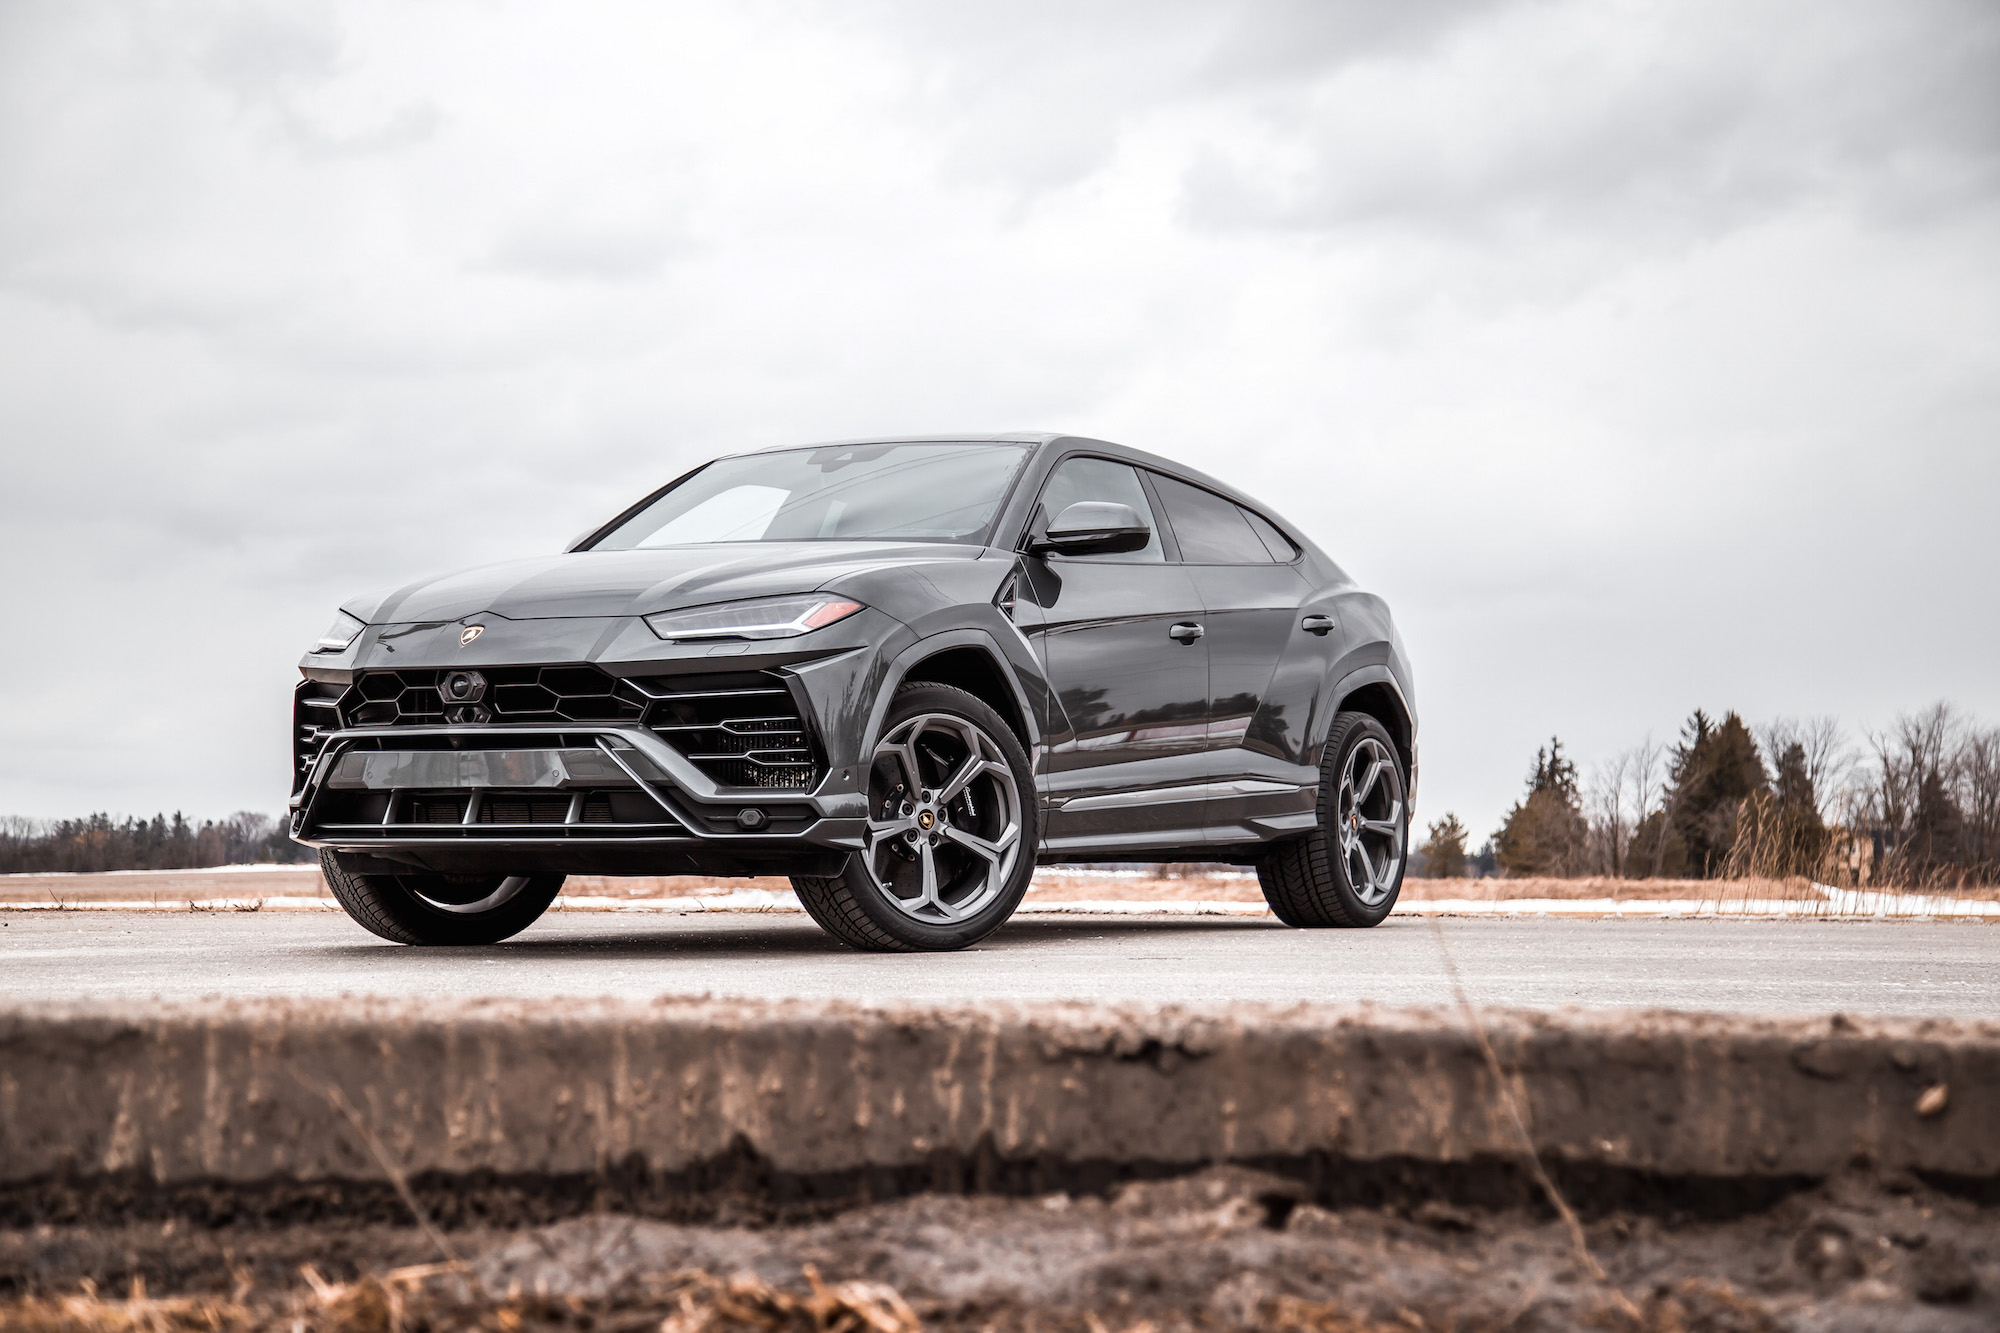 Review: 2019 Lamborghini Urus | CAR